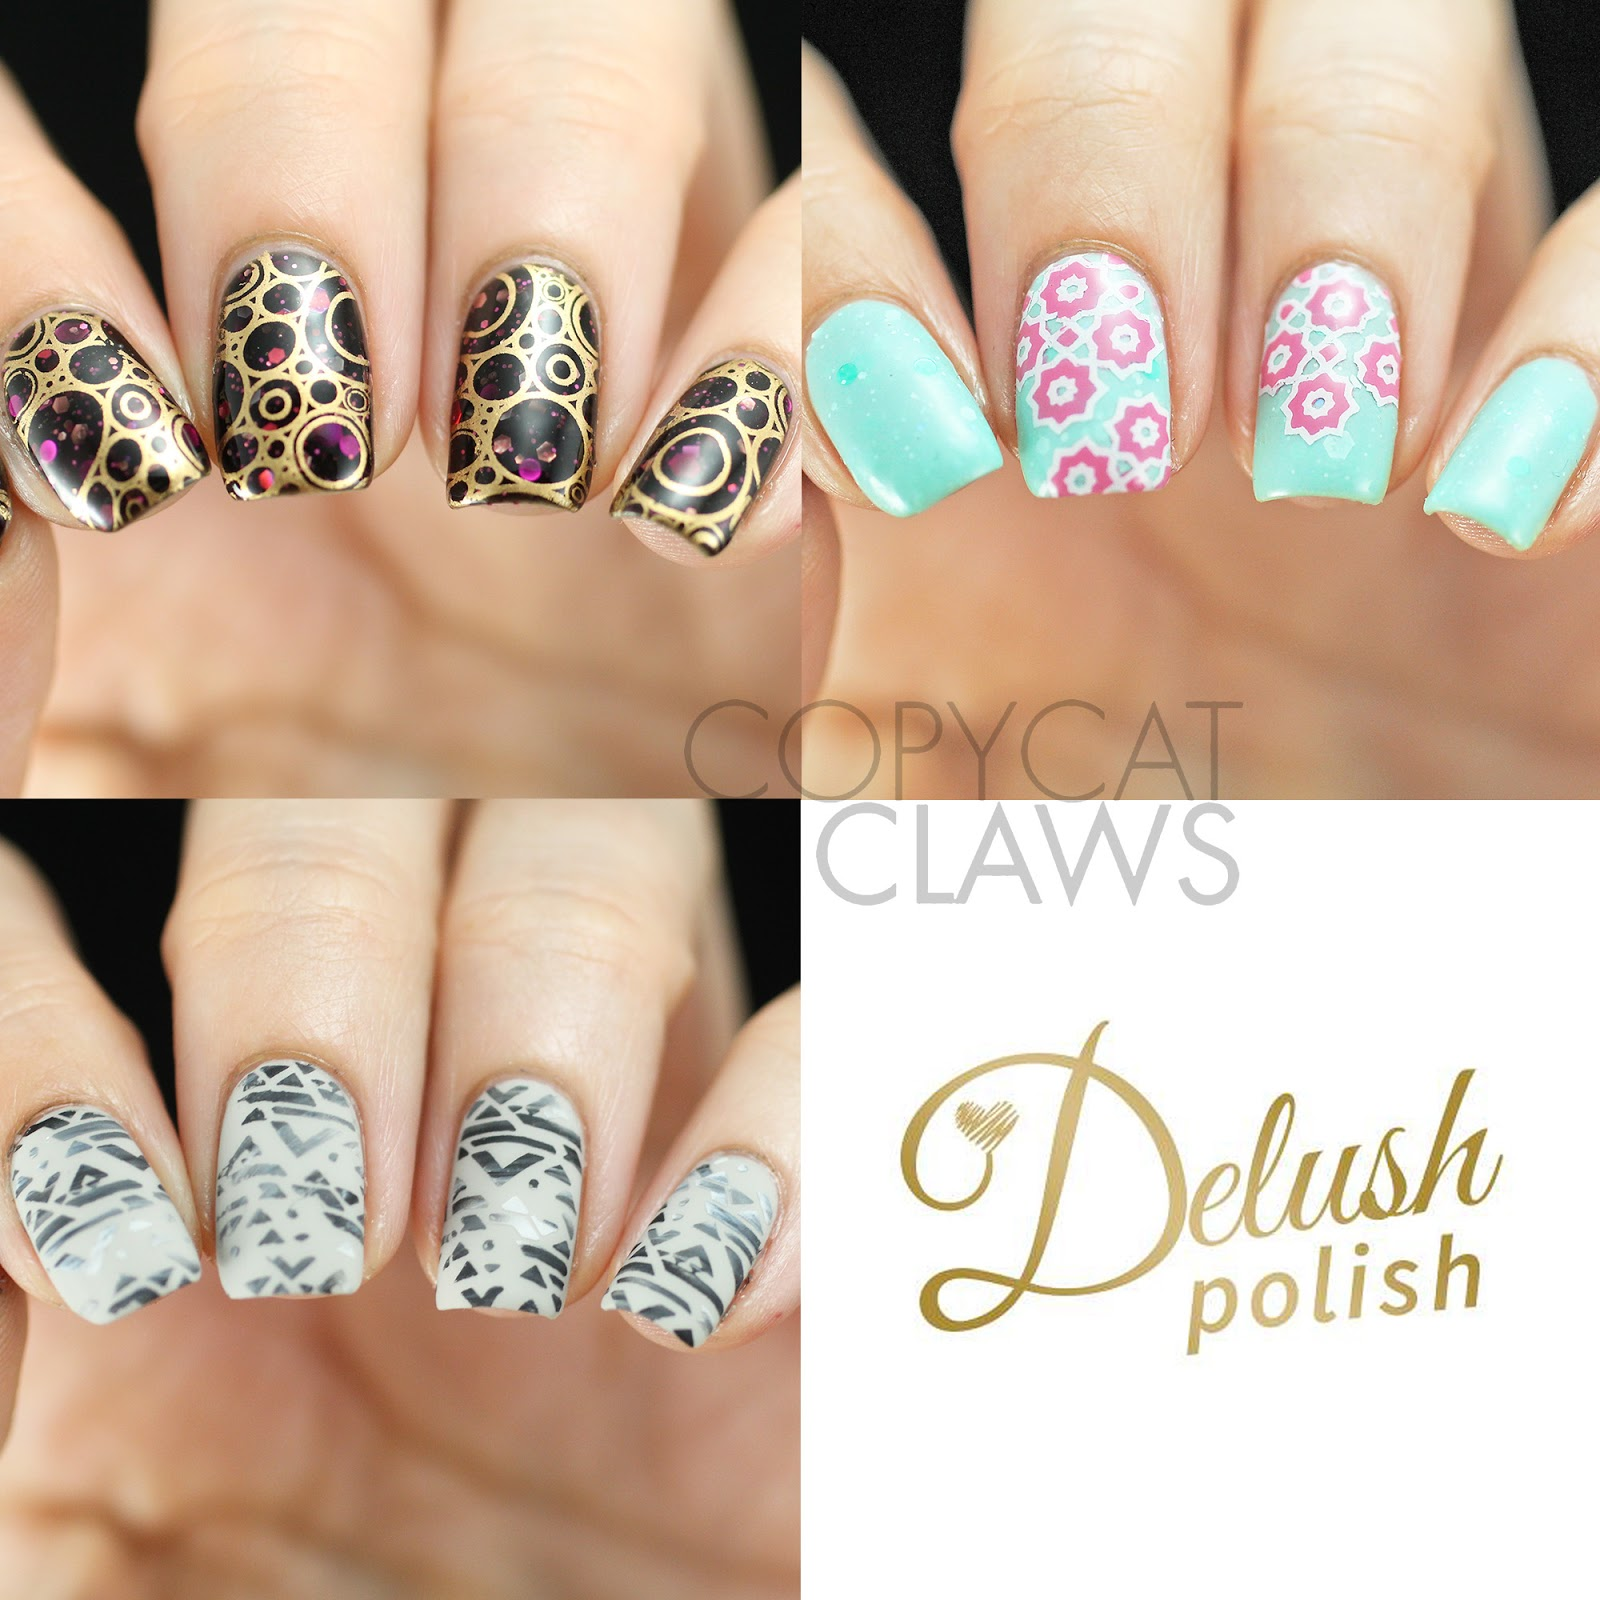 Copycat Claws: Delush Polish DP02 Dazed & Enthused Stamping Plate Review